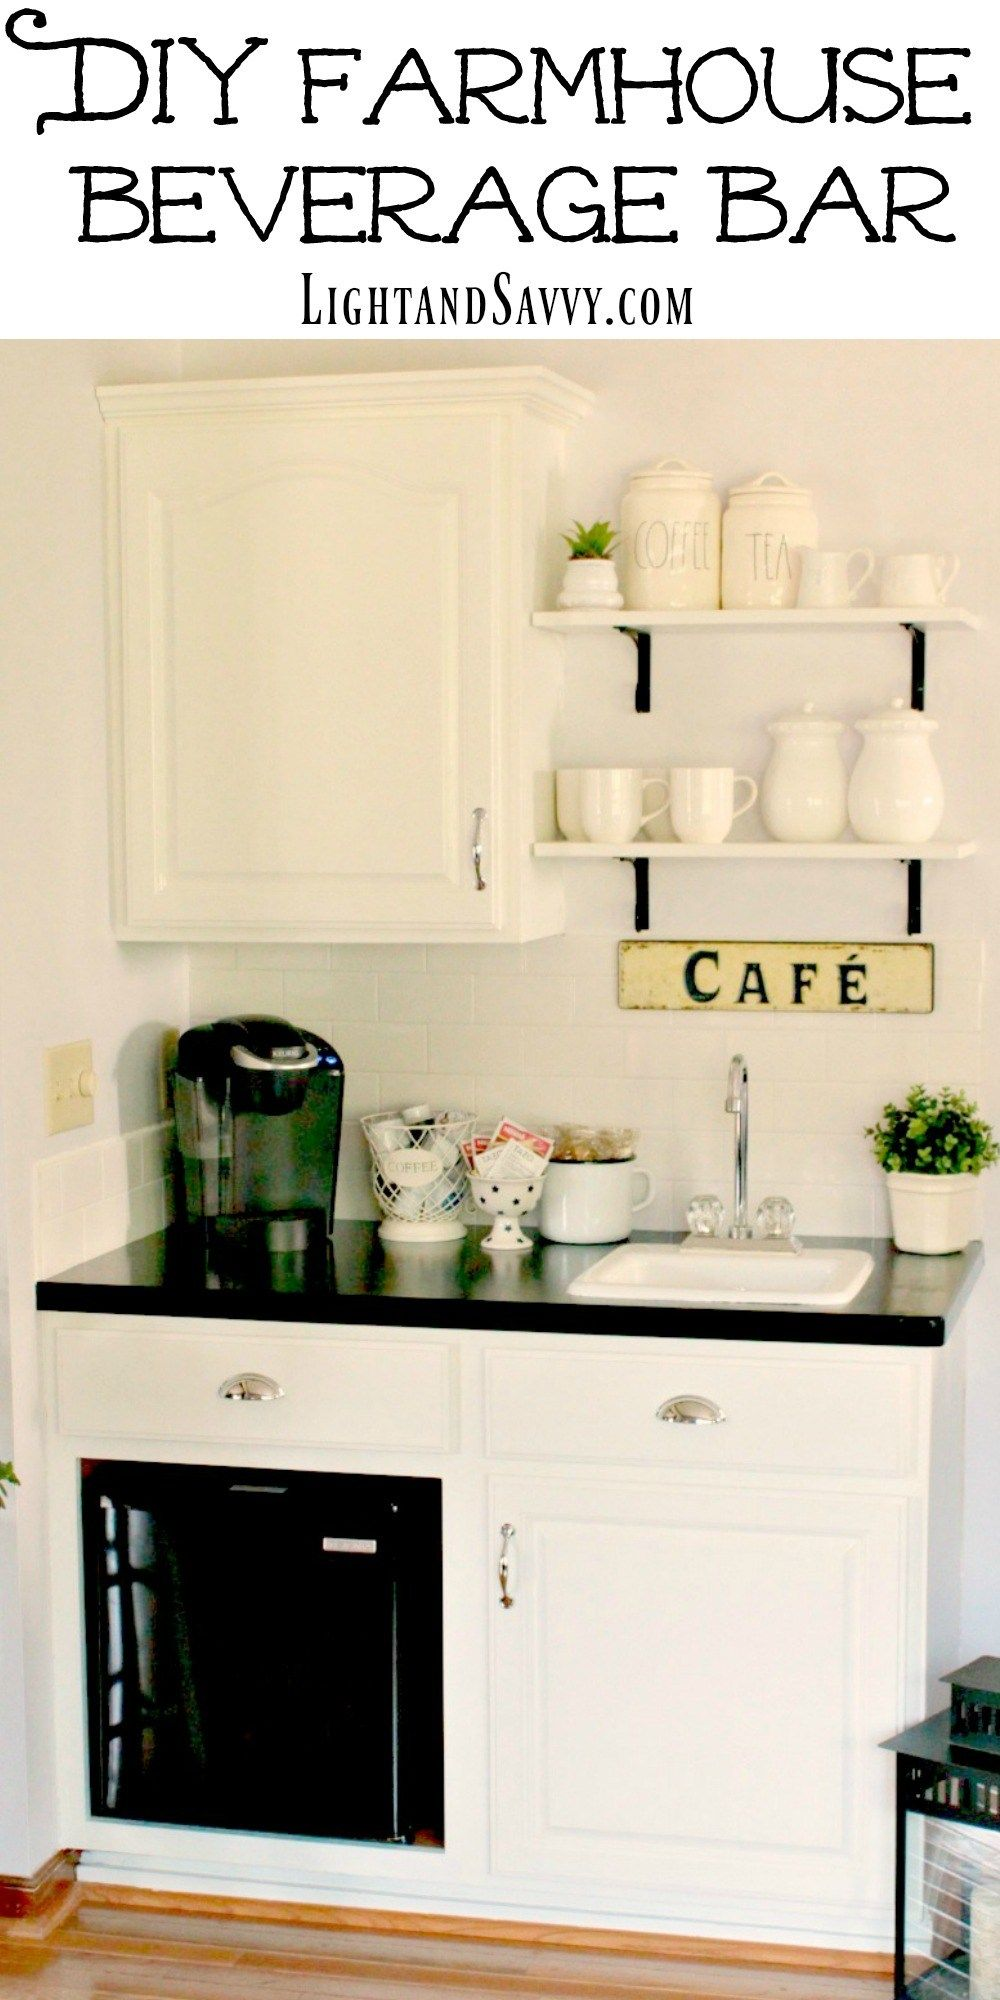 Basements DIY Farmhouse Beverage Bar